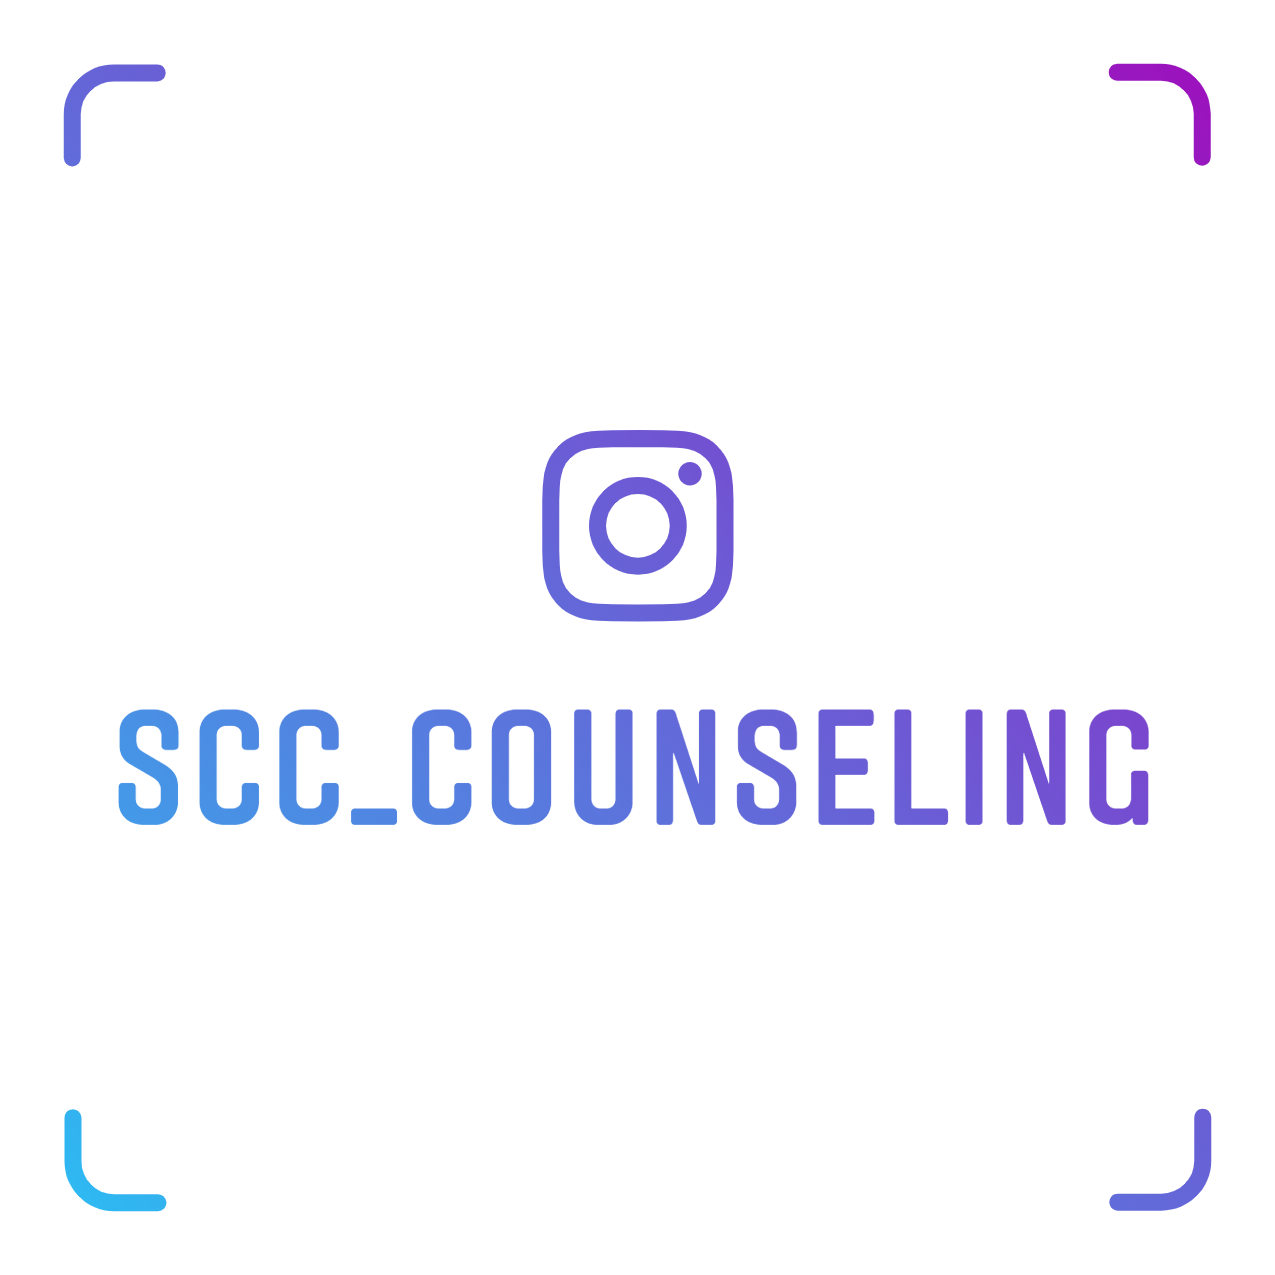 scc_counseling_nametag (1).png